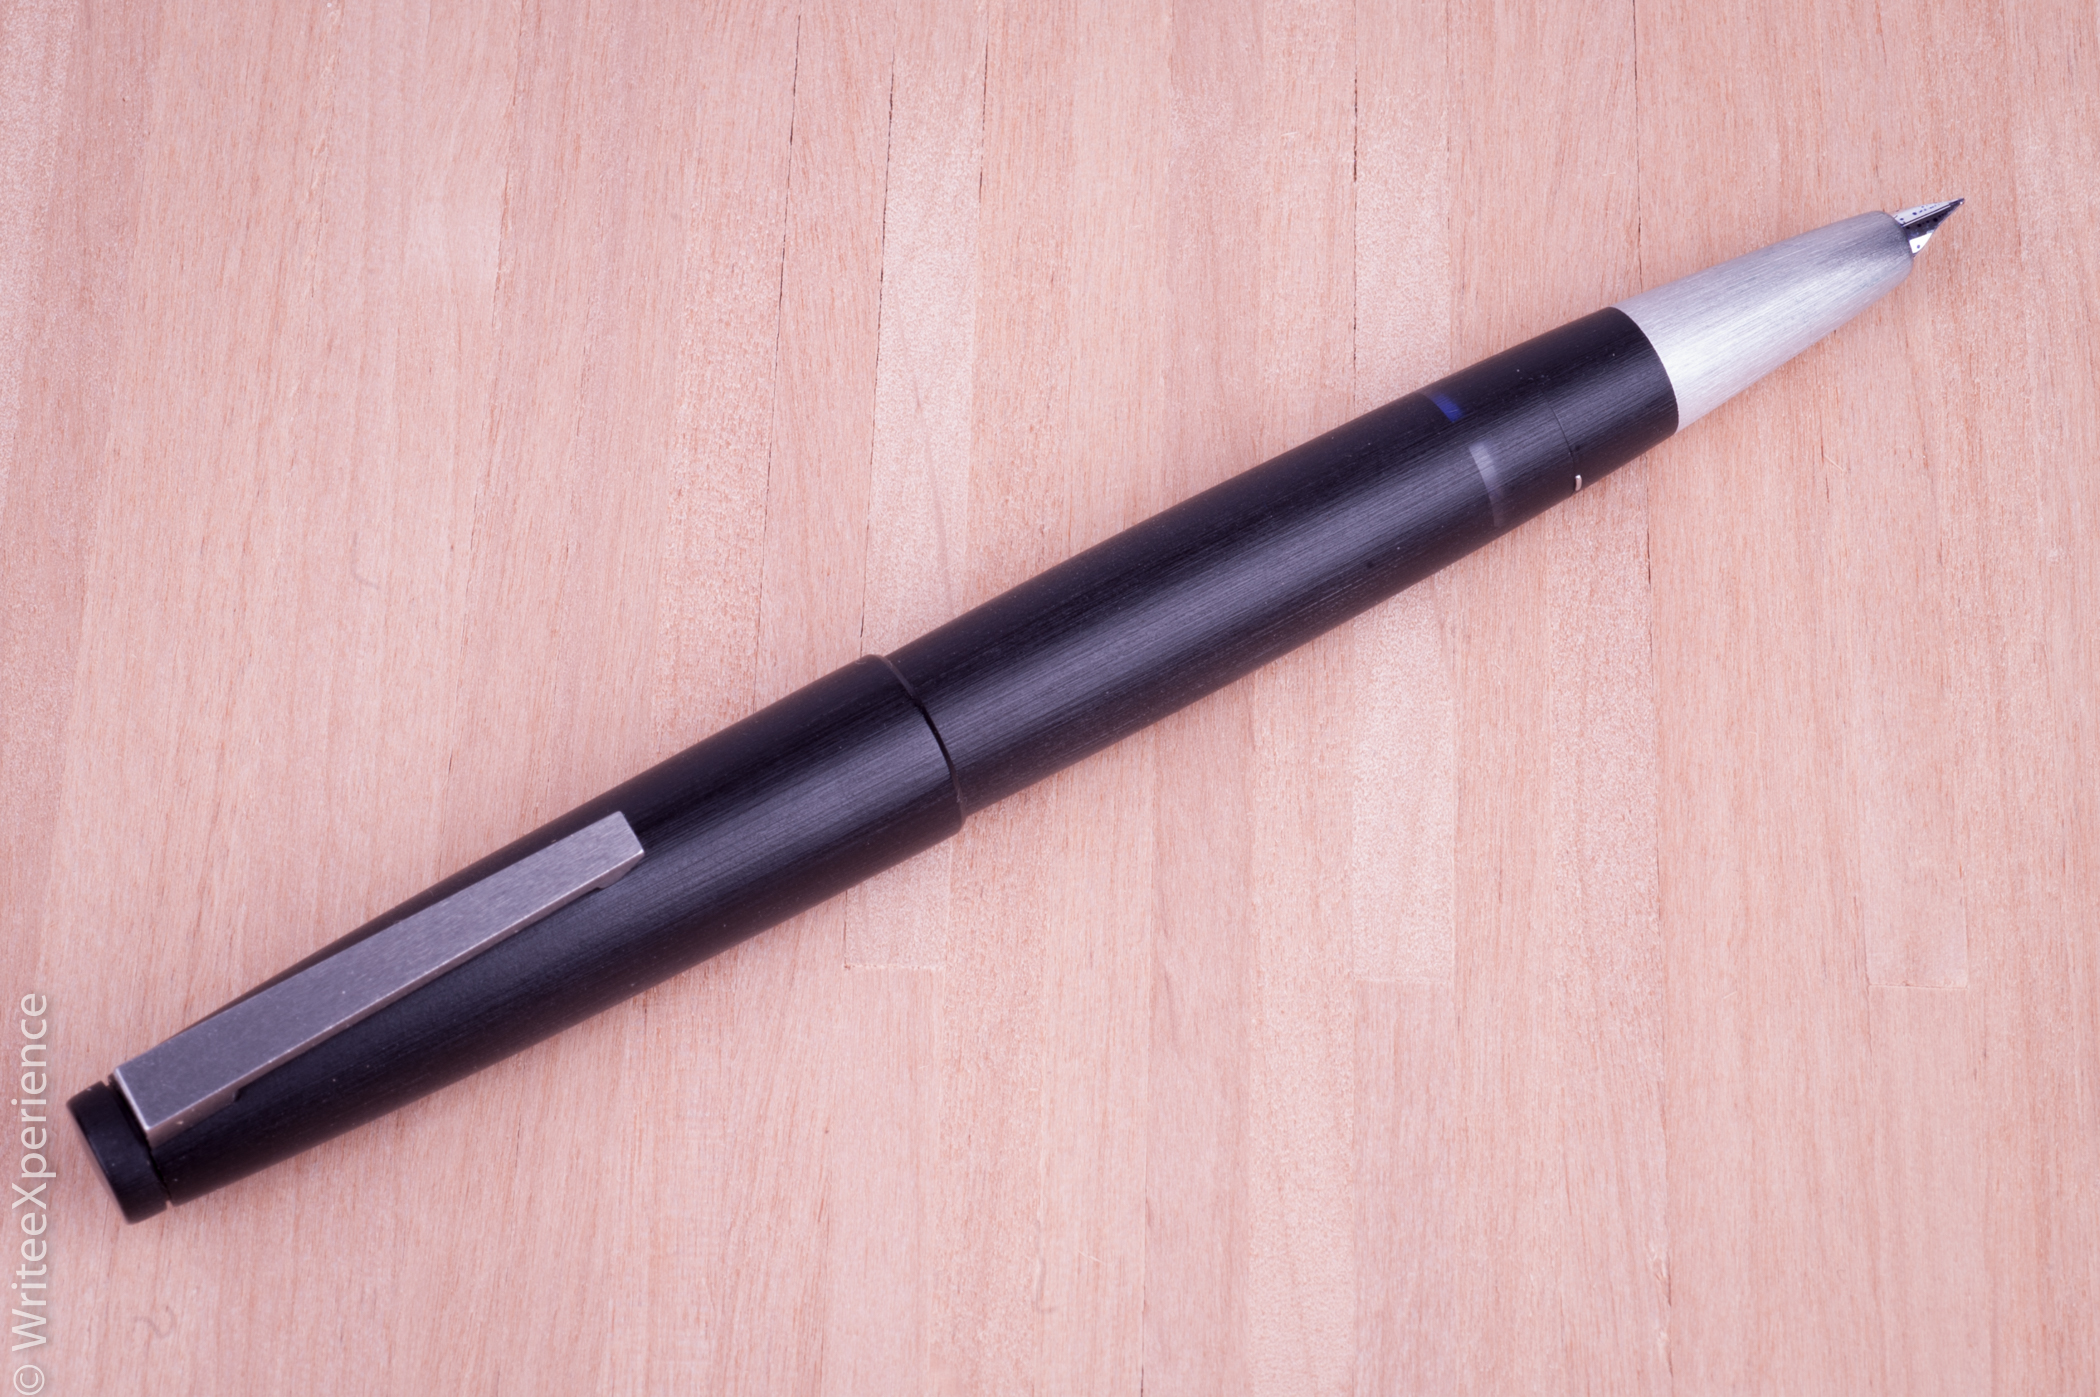 Lamy 2000 fountain pen makrolon